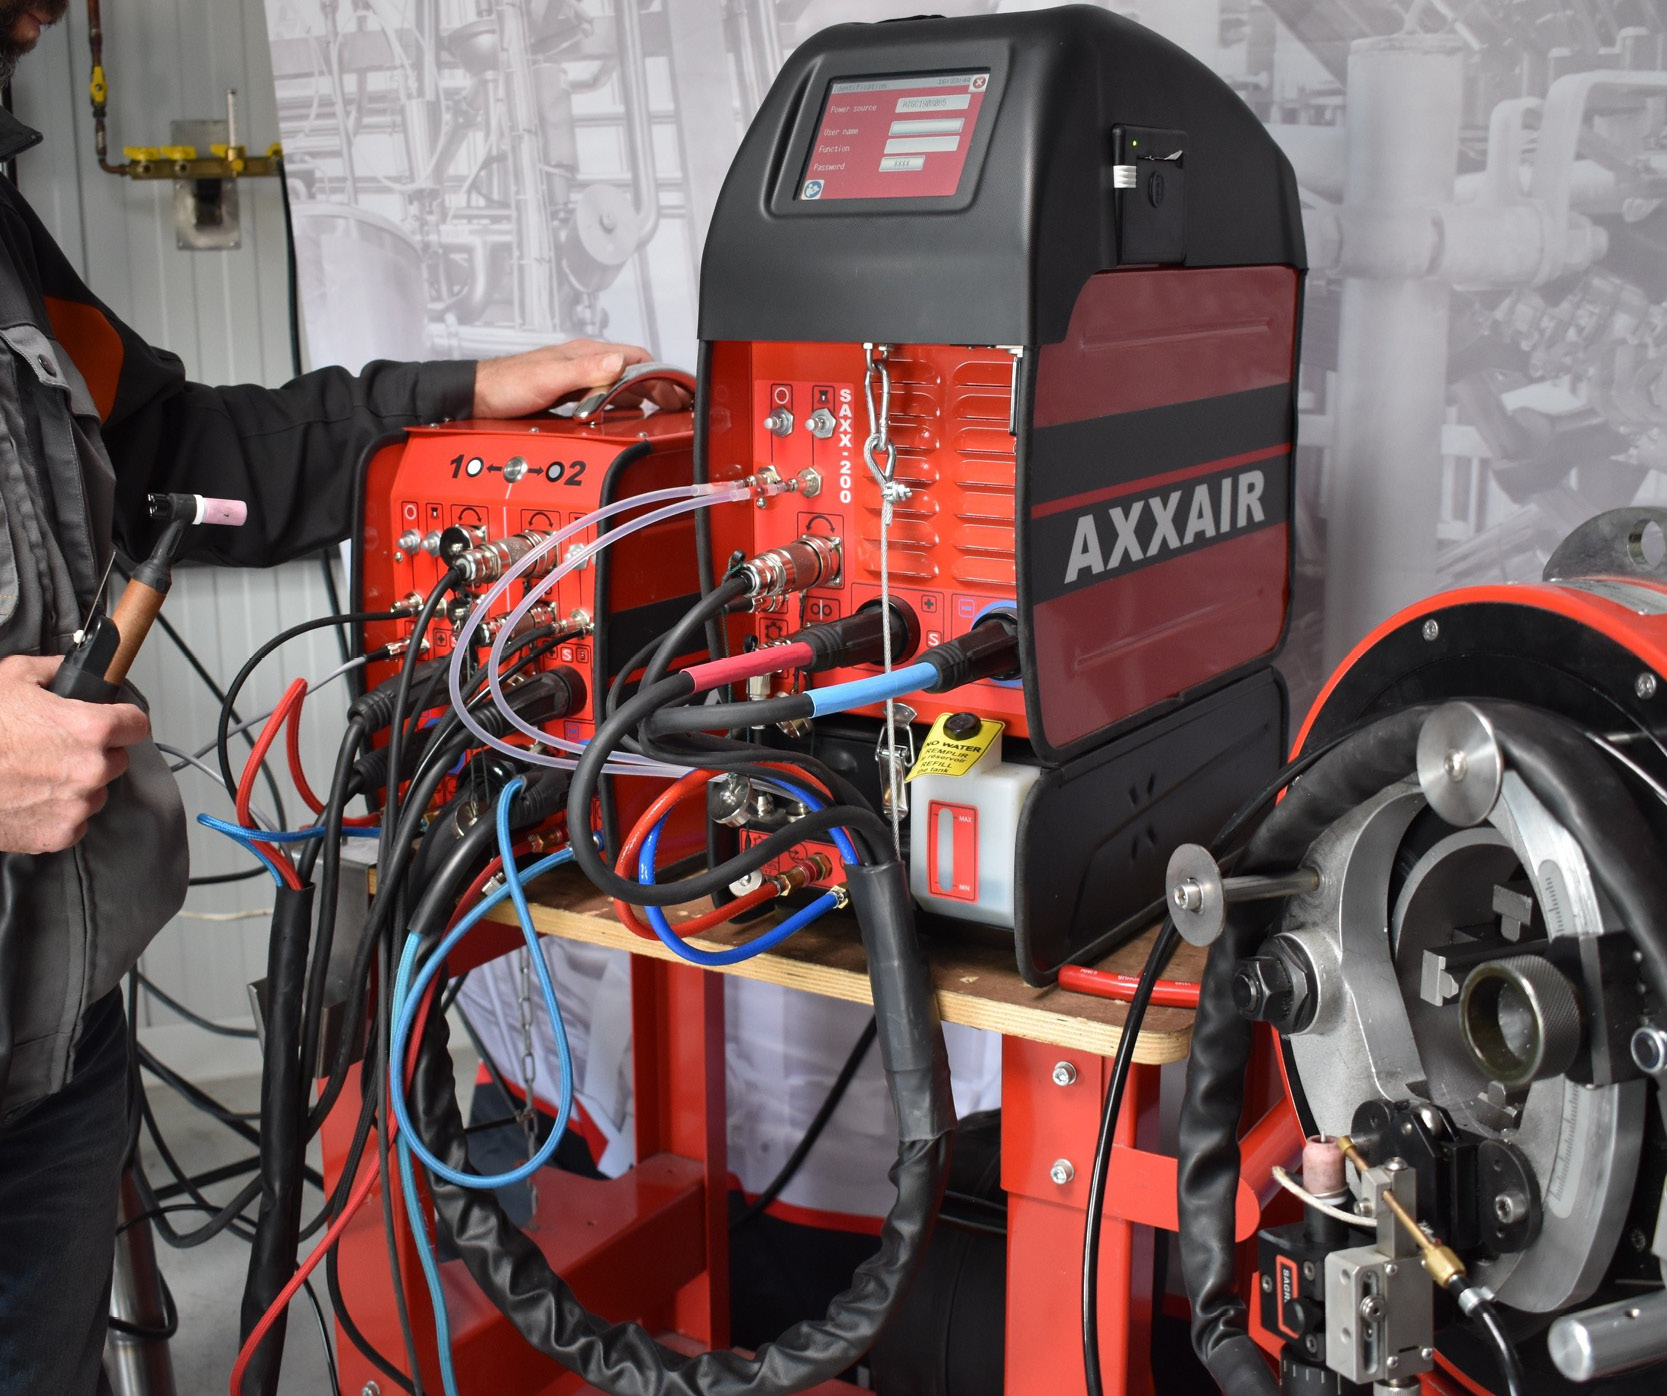 Different configurations for the orbital welding power supply SAXX